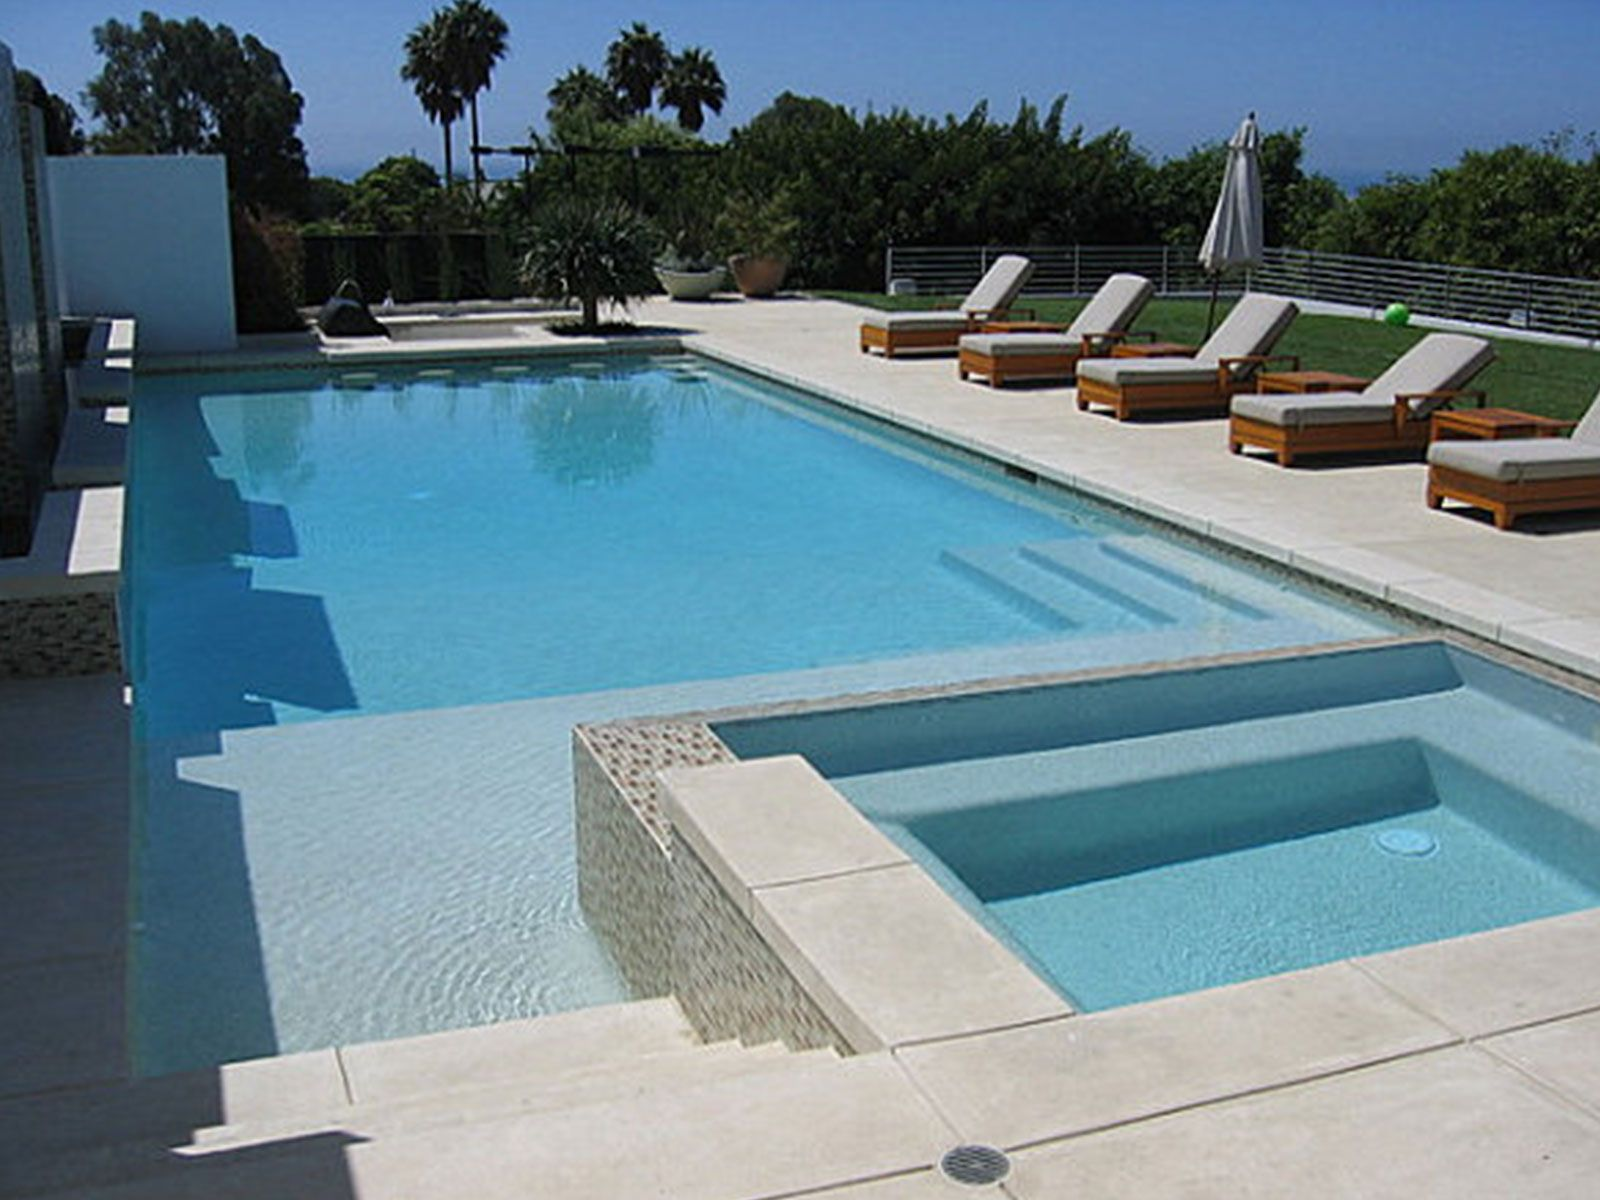 simple swimming pool design image modern creative swimming modern swimming pools and spas. Interior Design Ideas. Home Design Ideas